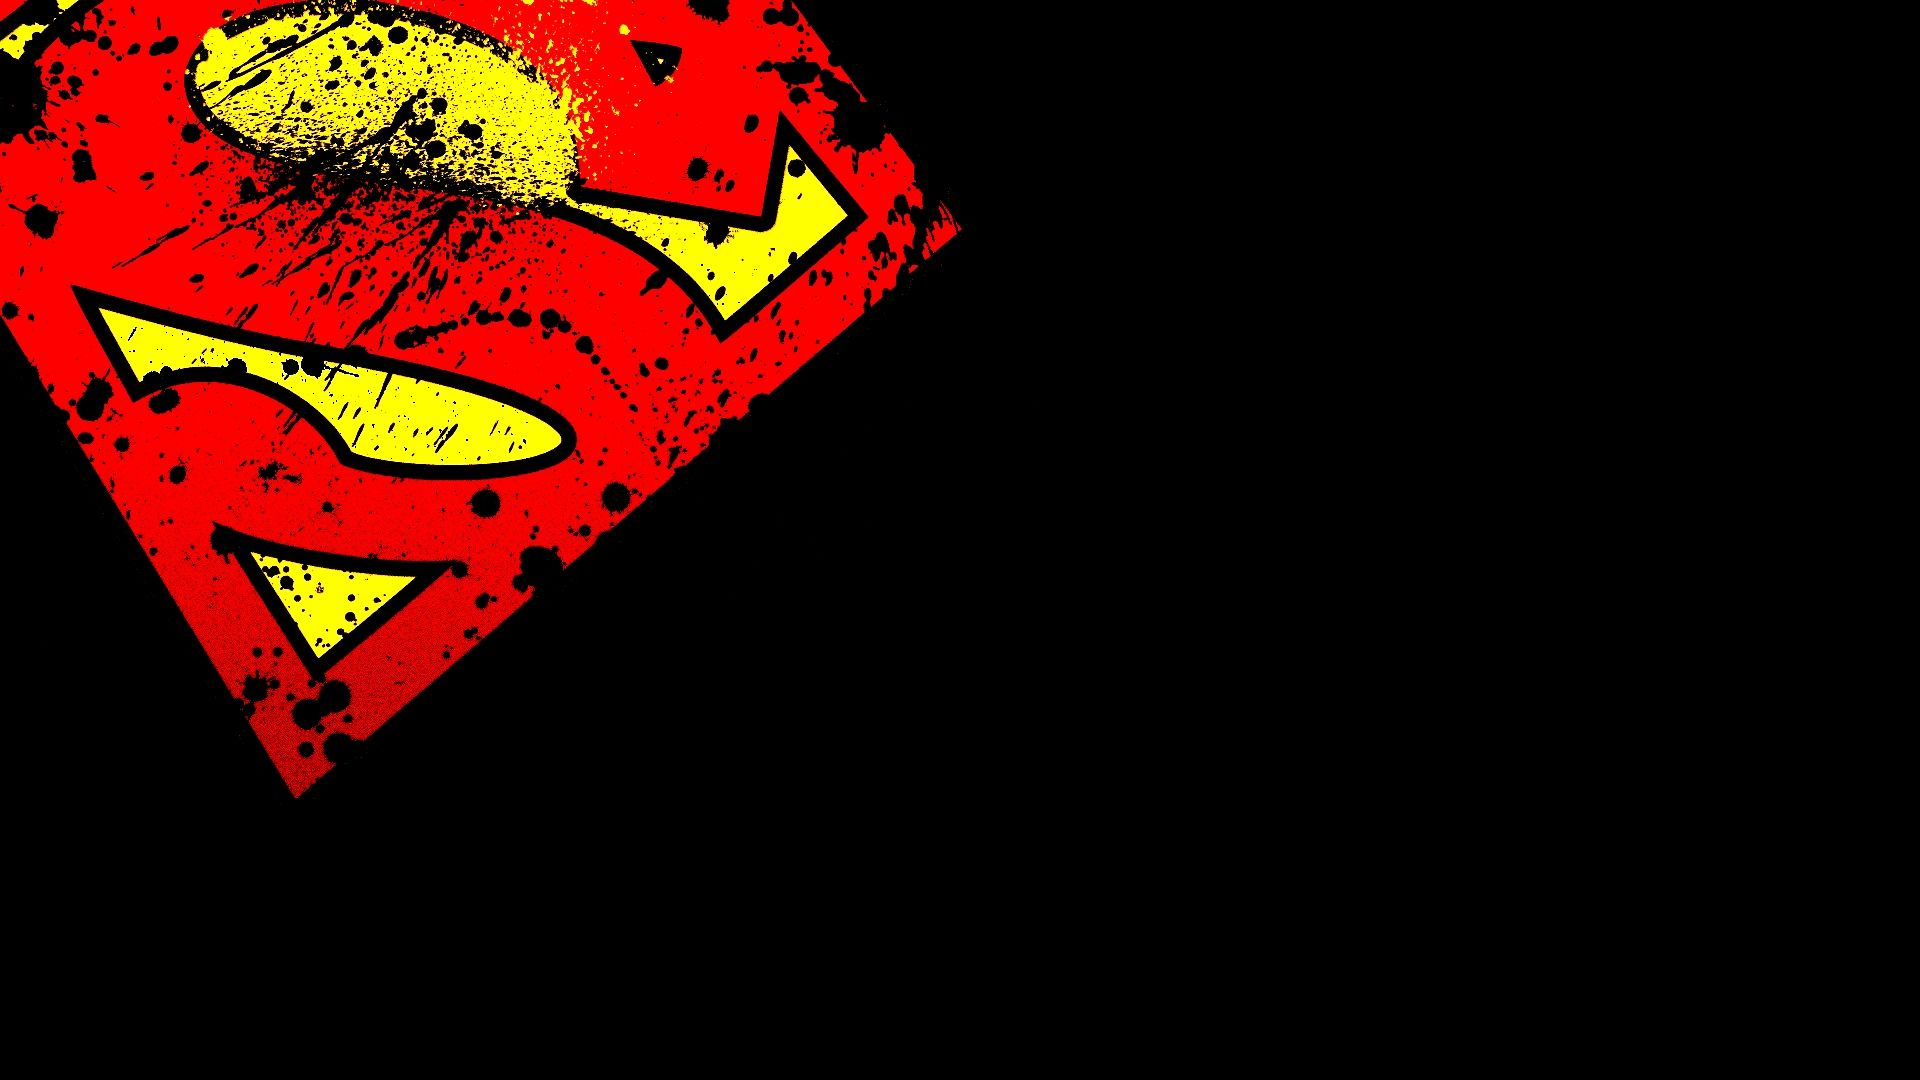 superman hd wallpapers for pc Superman Full HD Wallpaper